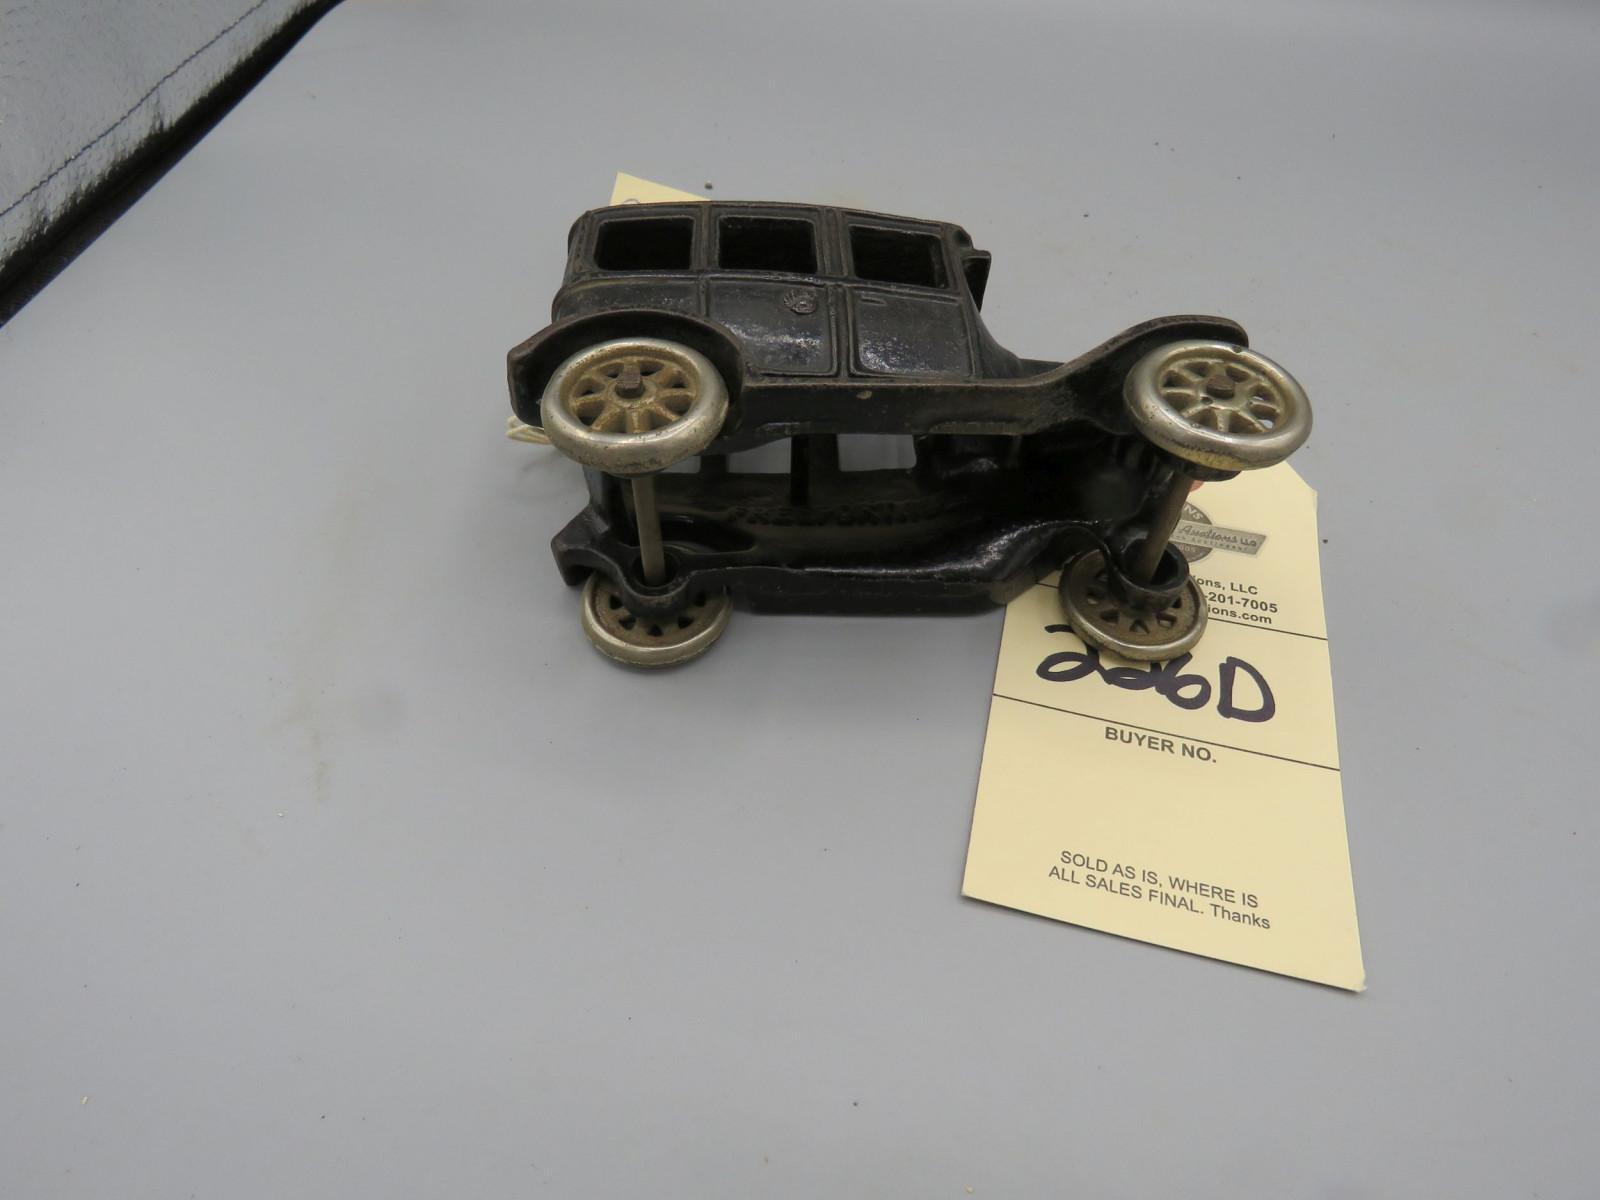 Arcade Cast Iron Sedan @1924 Approx. 6 inches - Image 3